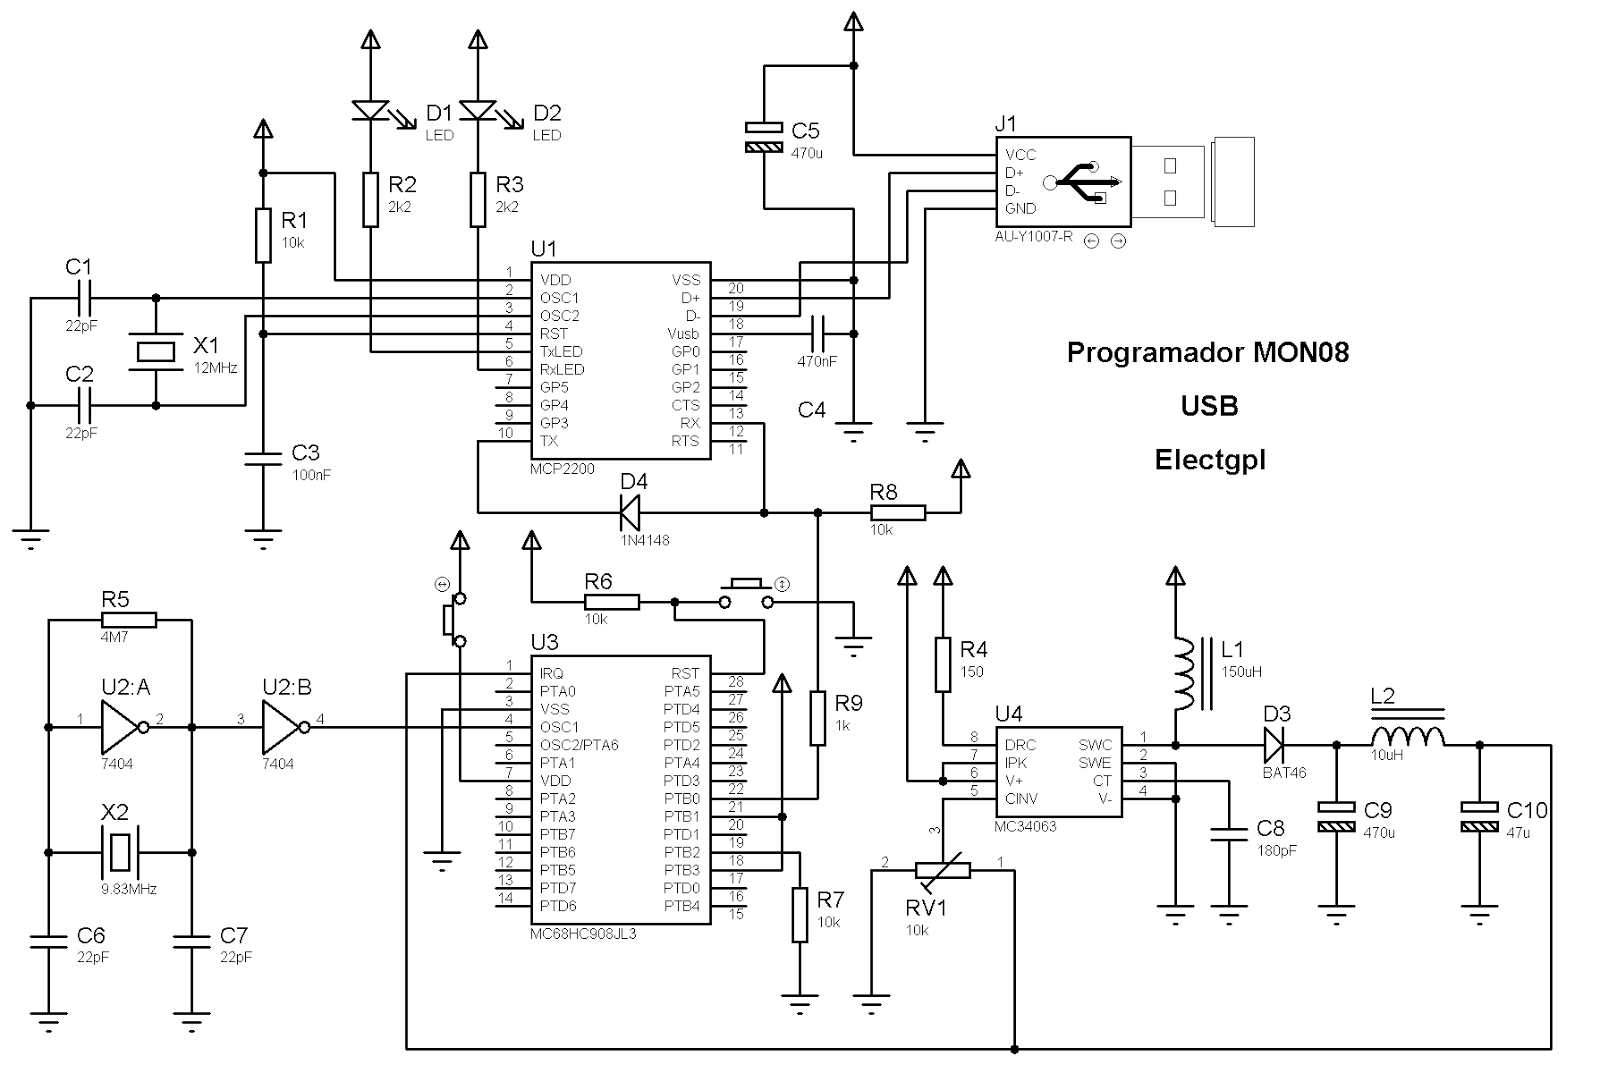 Remarkable Ft232 Programmer Auto Electrical Wiring Diagram Wiring Cloud Uslyletkolfr09Org